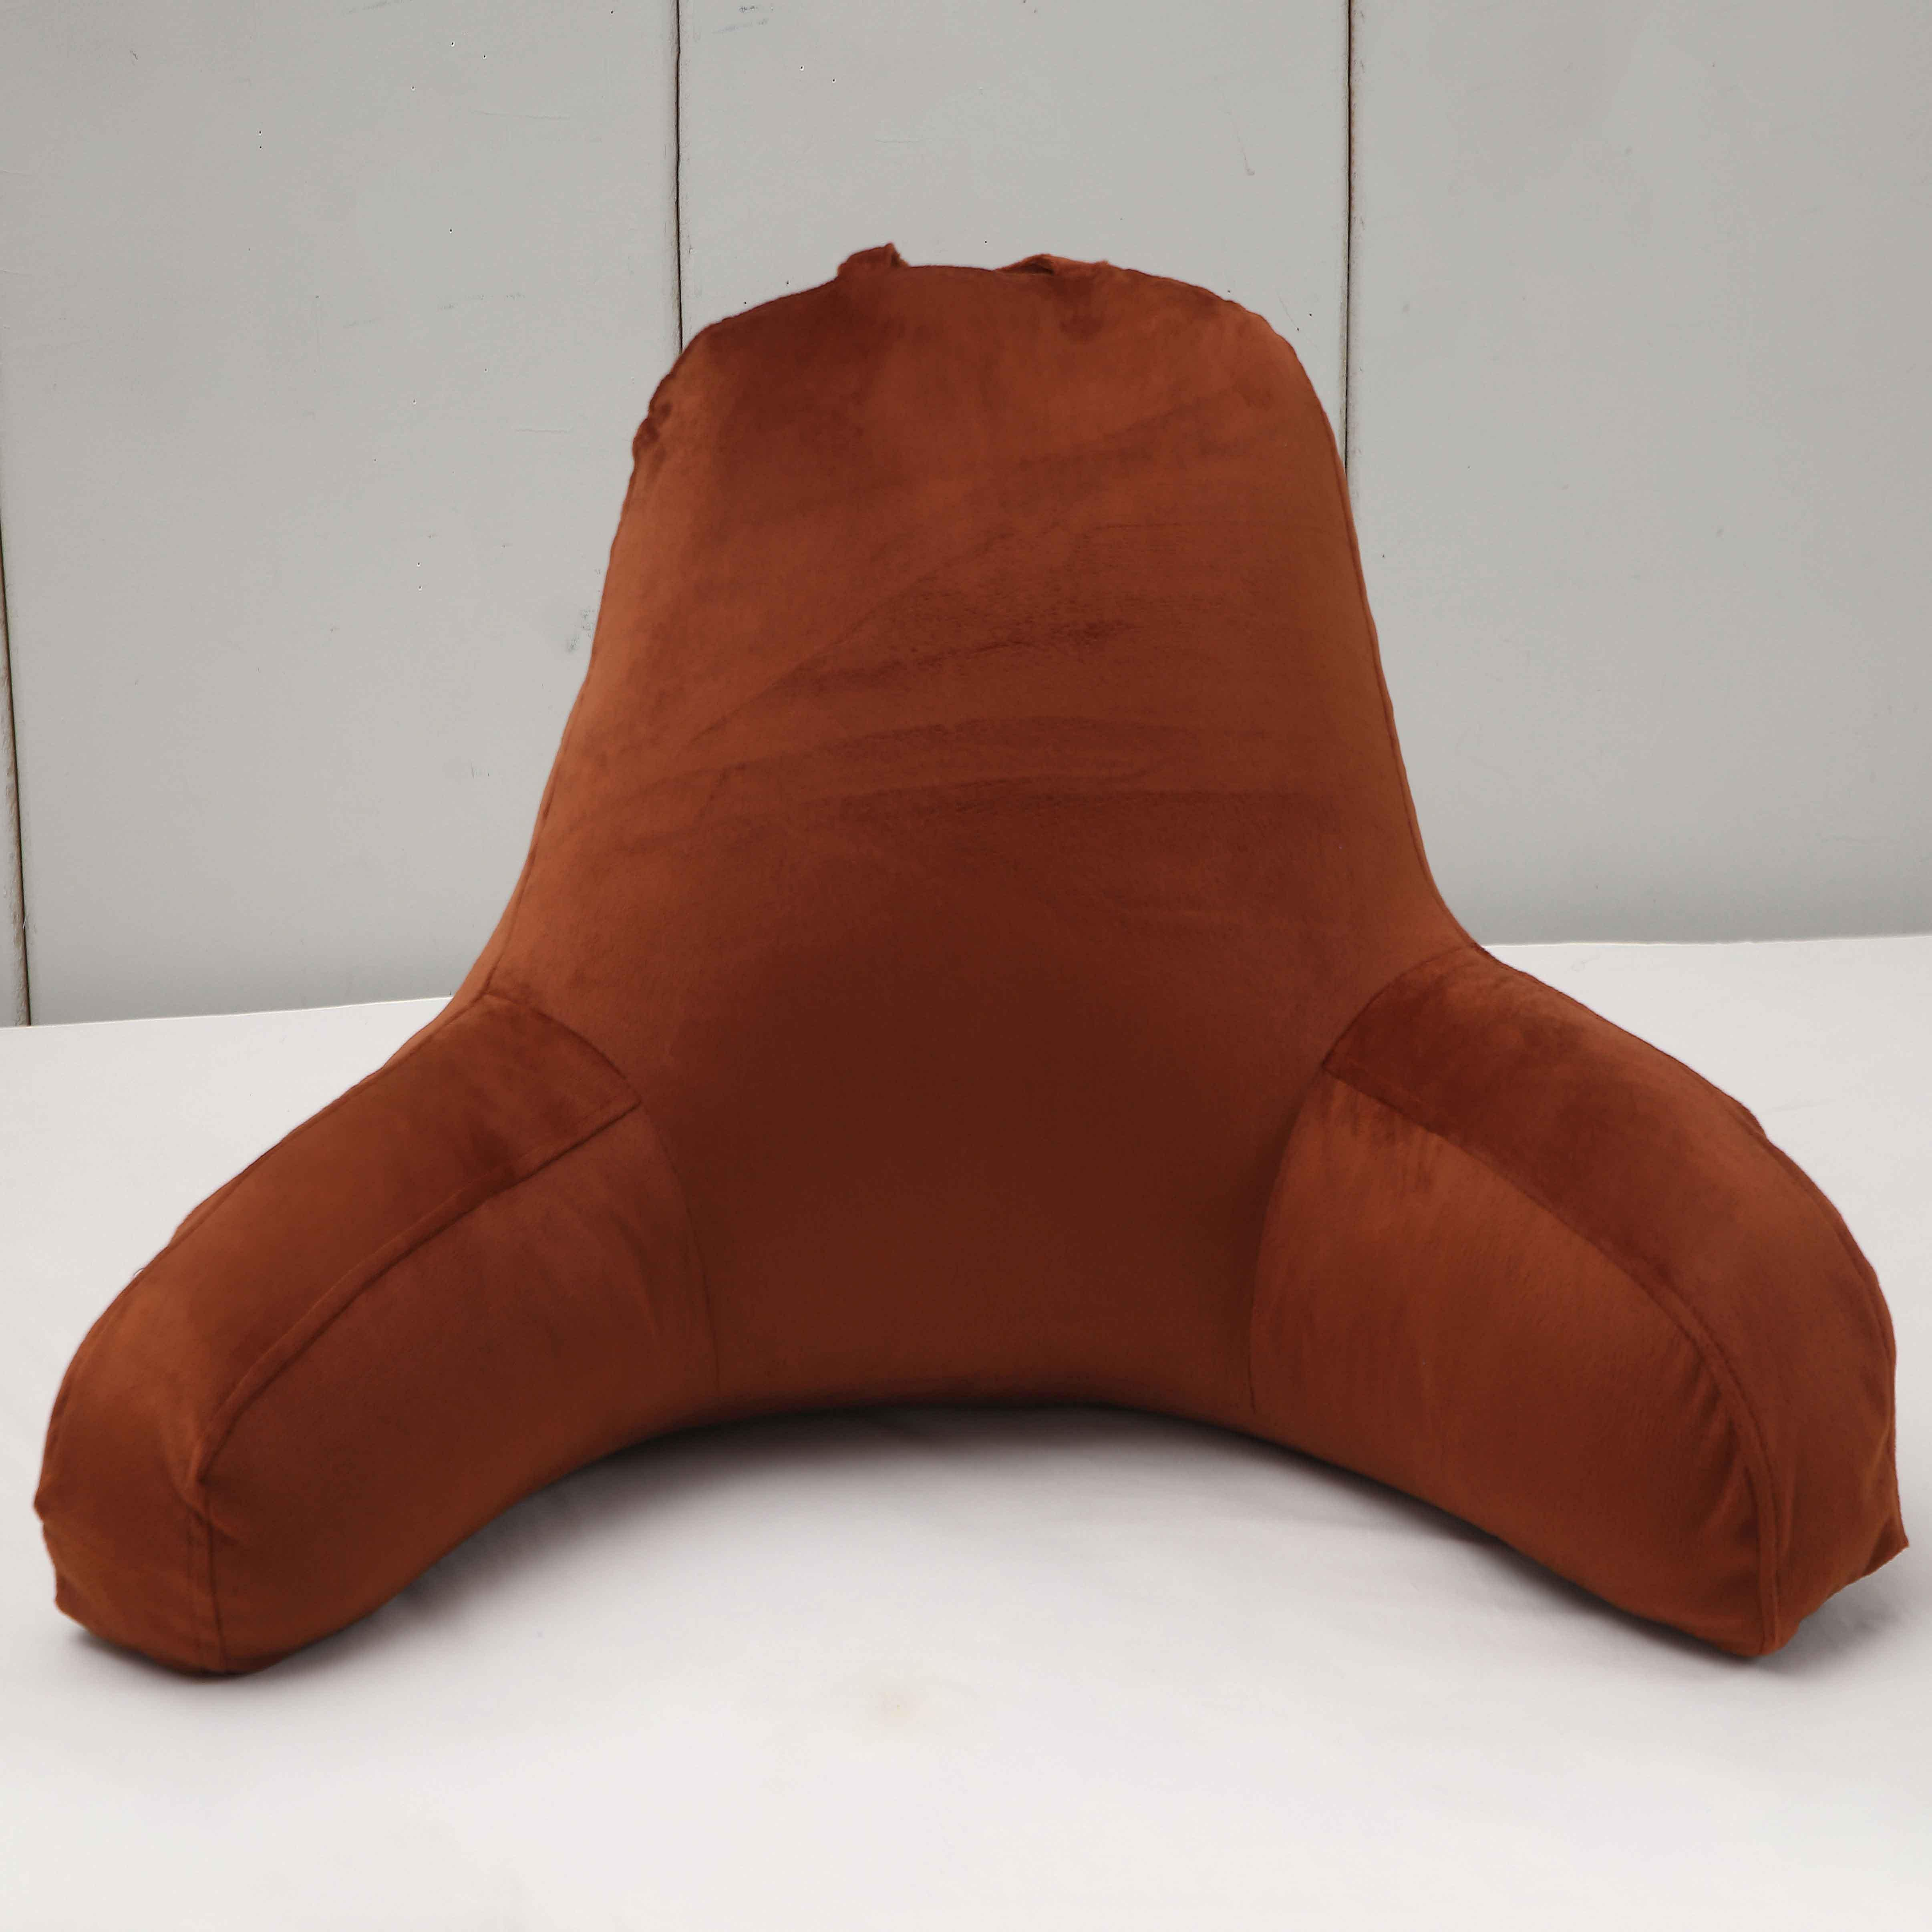 bed rest pillow backrest back arm support relax plush cushion reading lounger coffee 25 6x 18 1 x 9 8 inches pillows